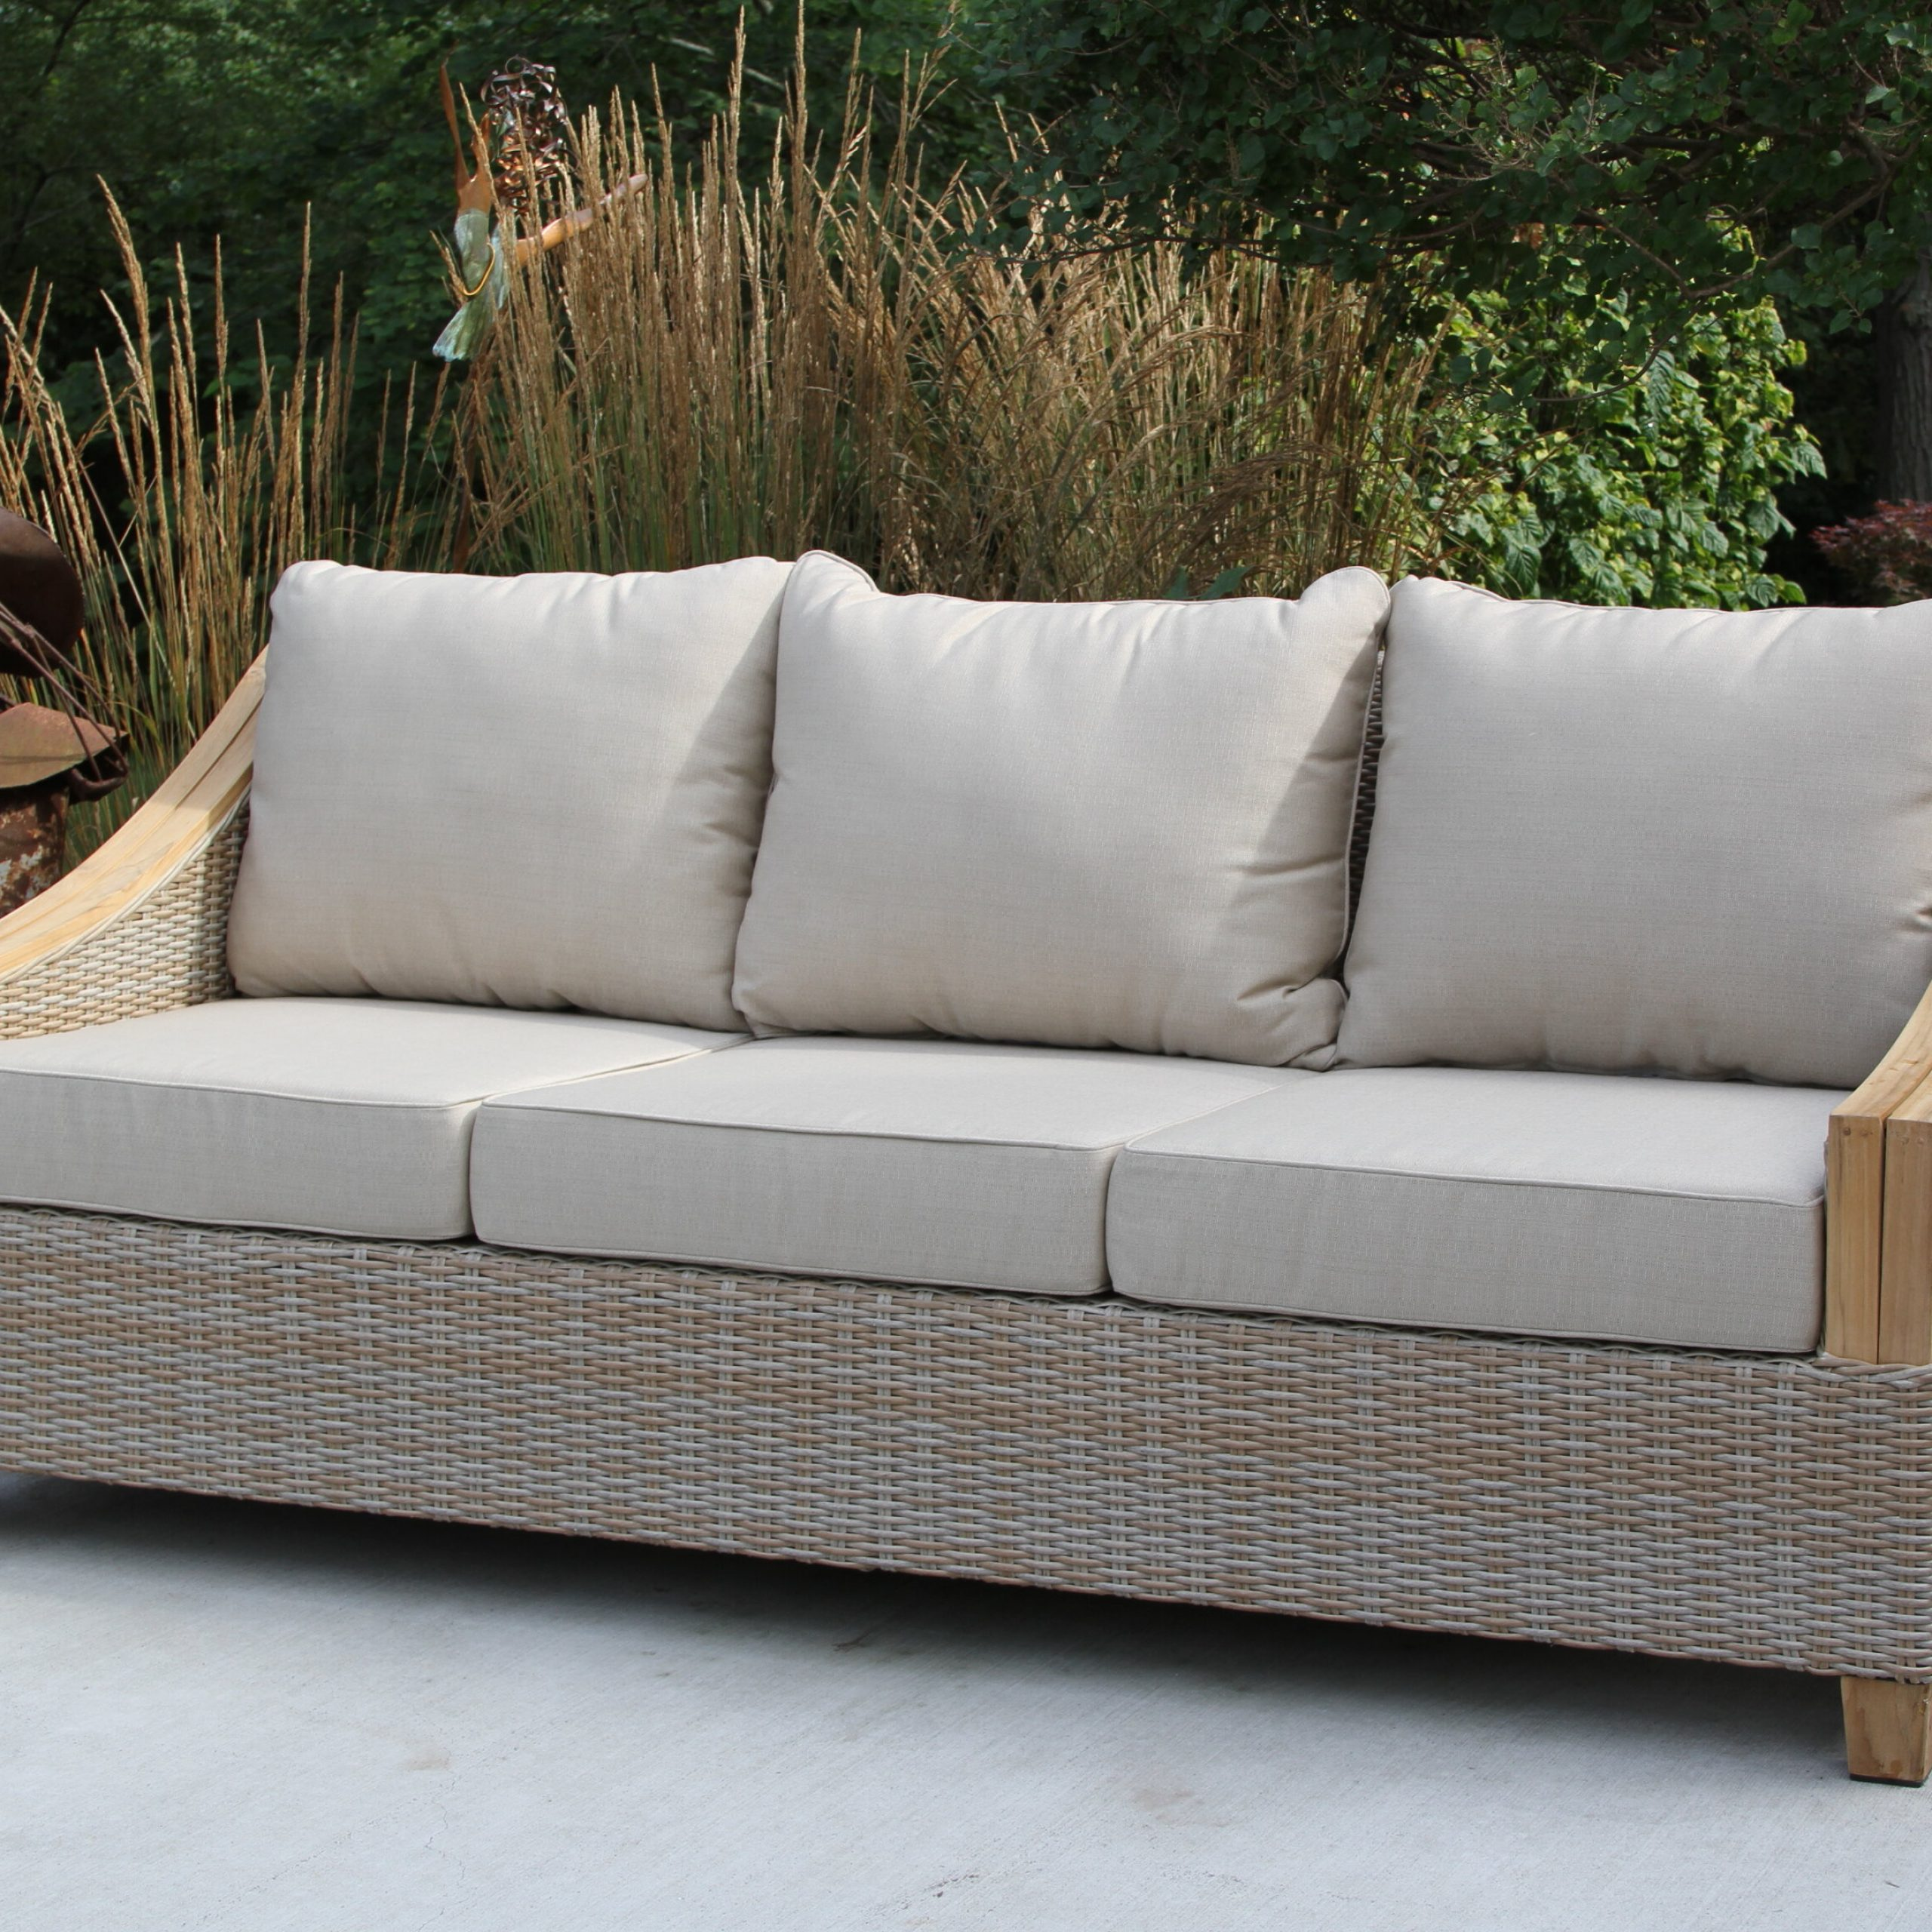 Most Current Kincaid Teak Patio Sofa With Sunbrella Cushions Throughout Honeycutt Patio Sofas With Cushions (View 10 of 25)